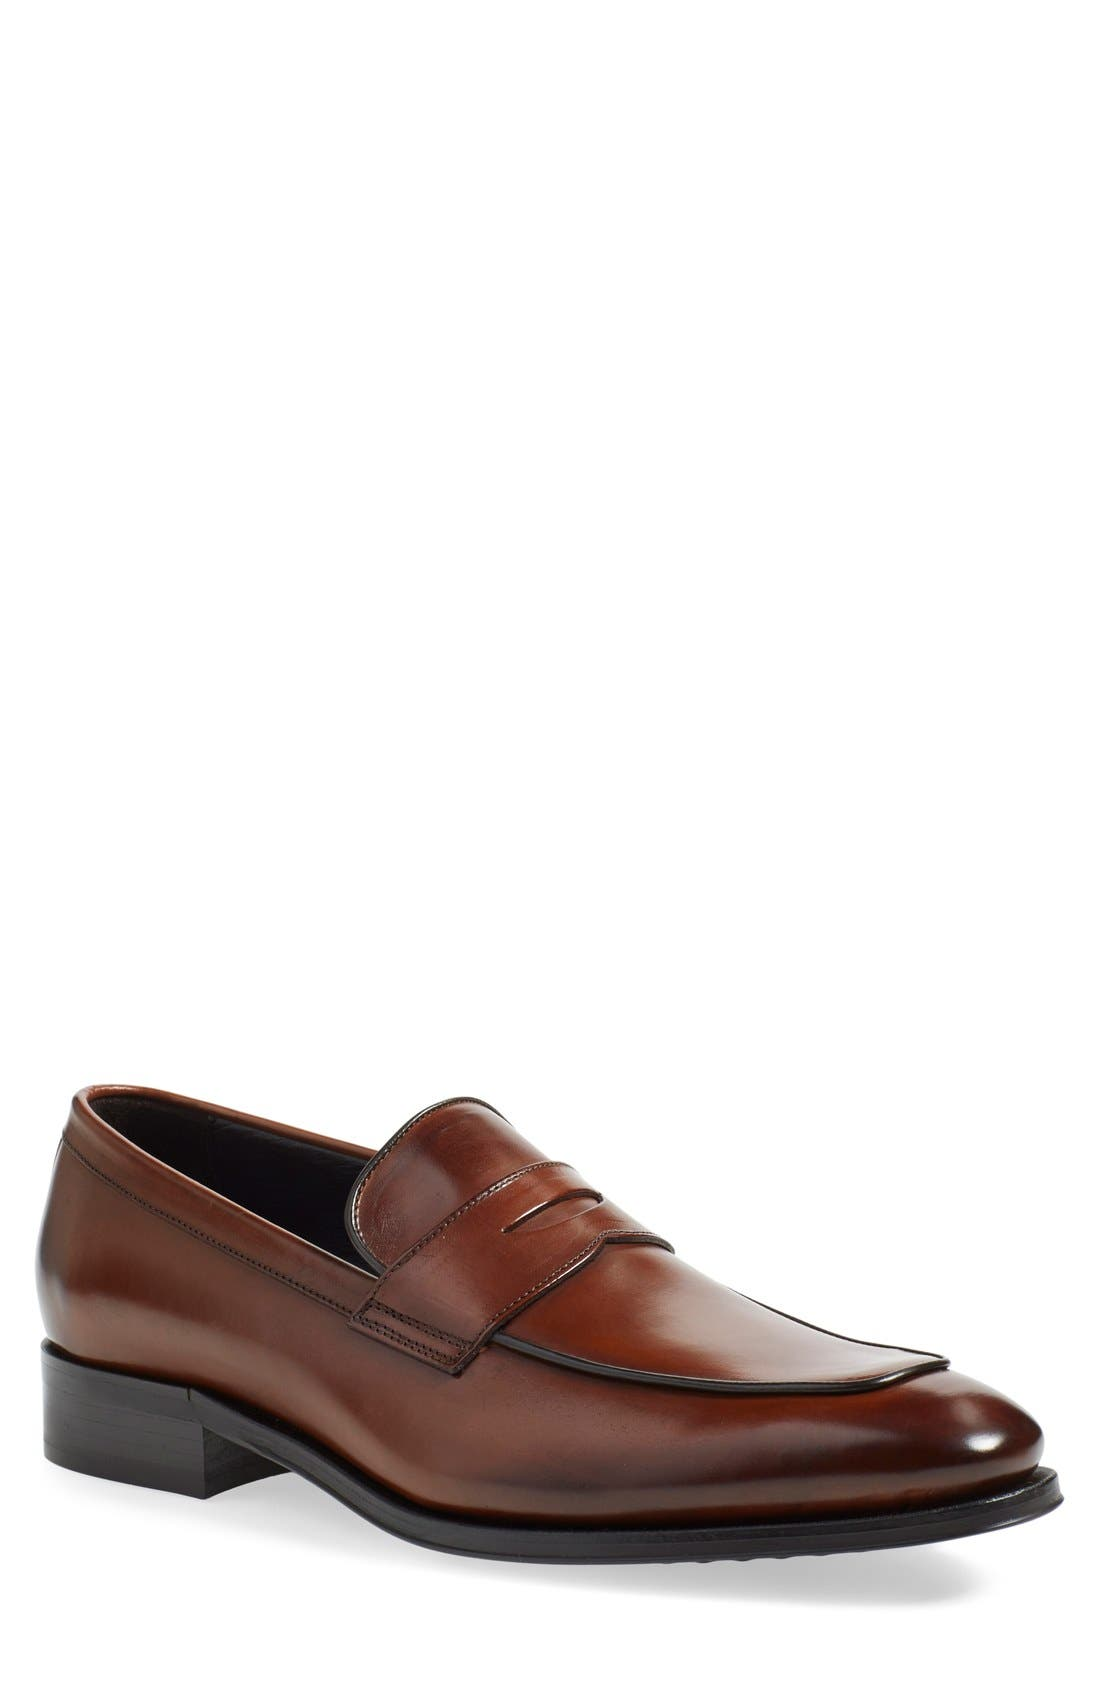 Alternate Image 1 Selected - To Boot New York Dupont Penny Loafer (Men)